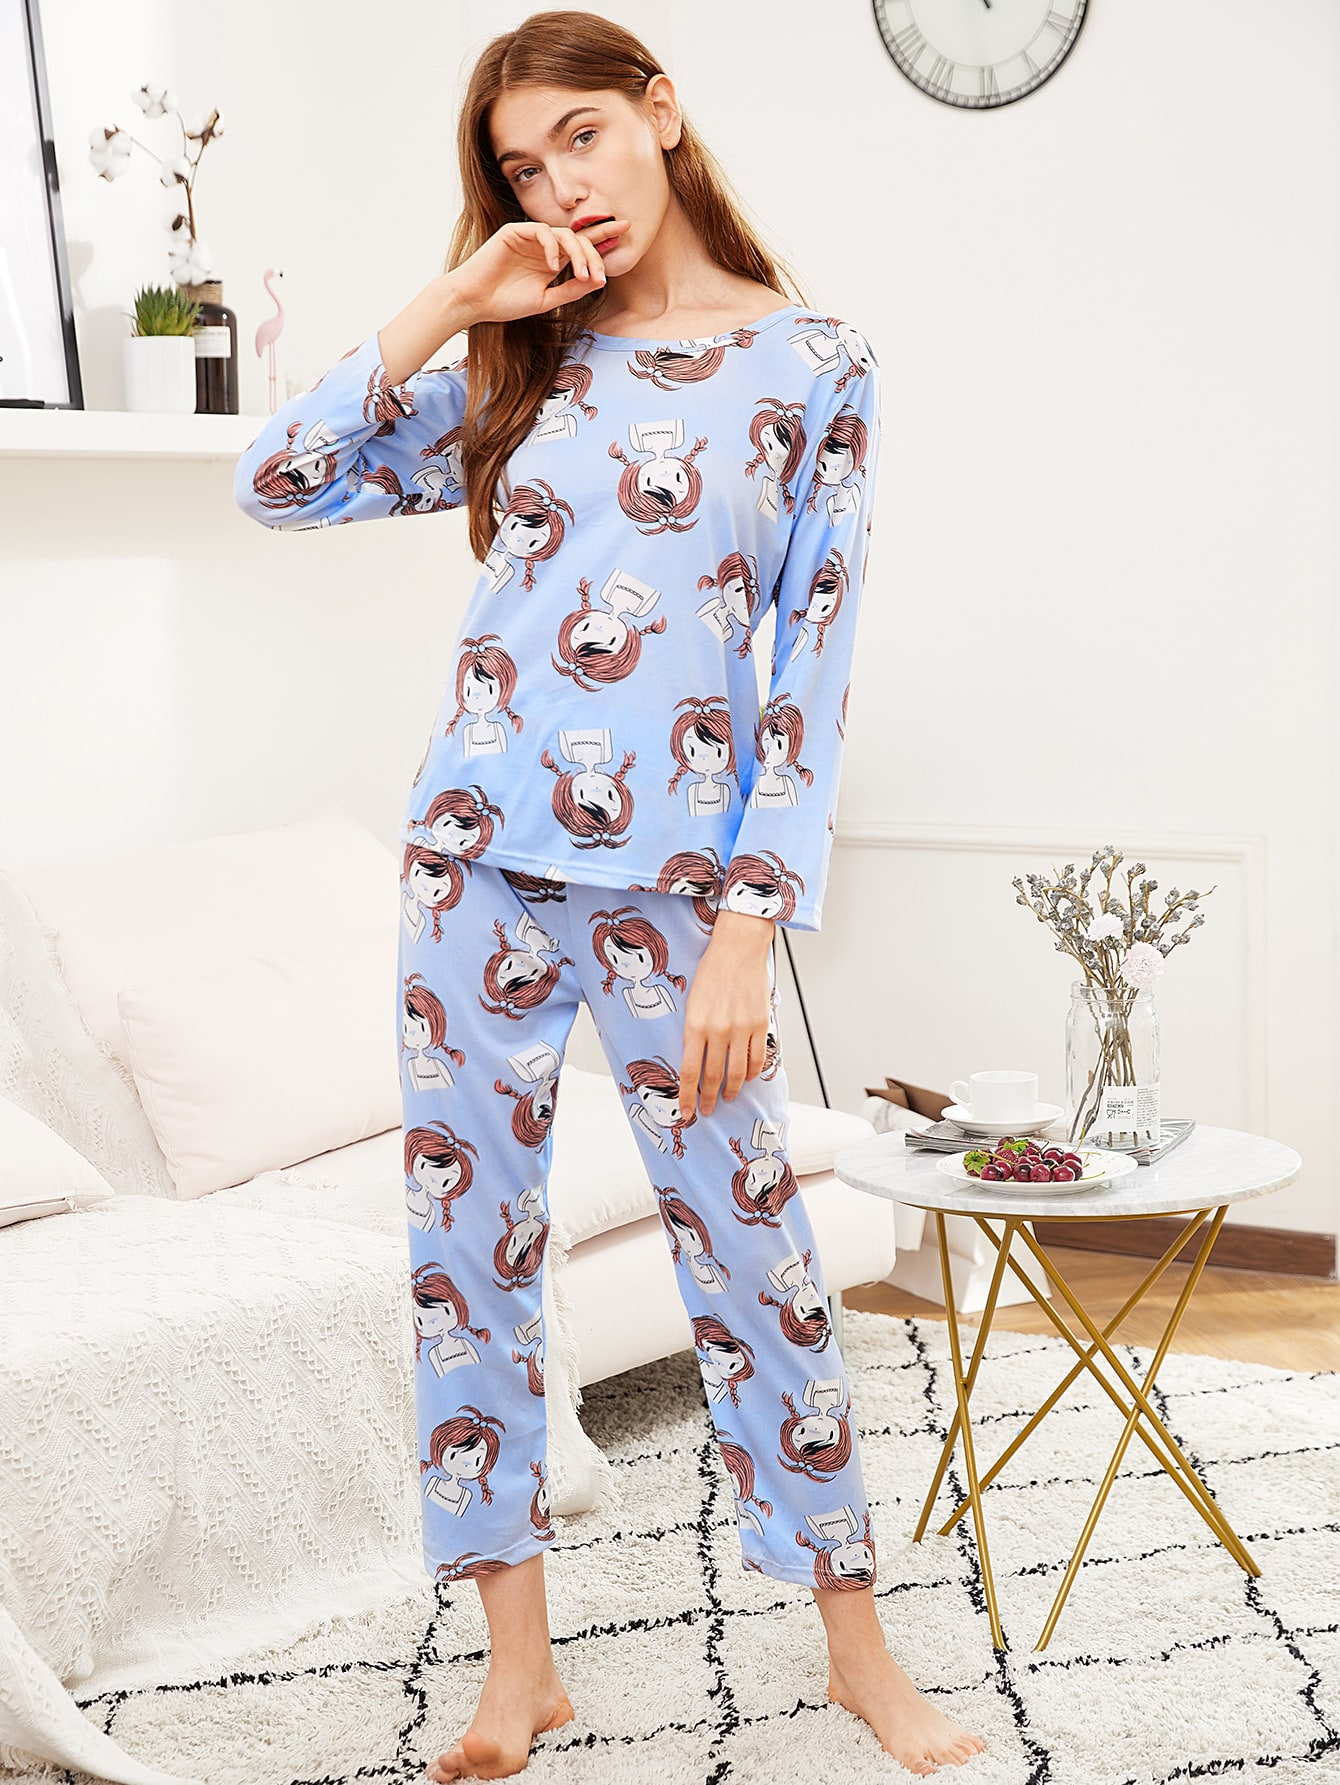 All Over Cartoon Girl Print Tee & Pants Pj Set